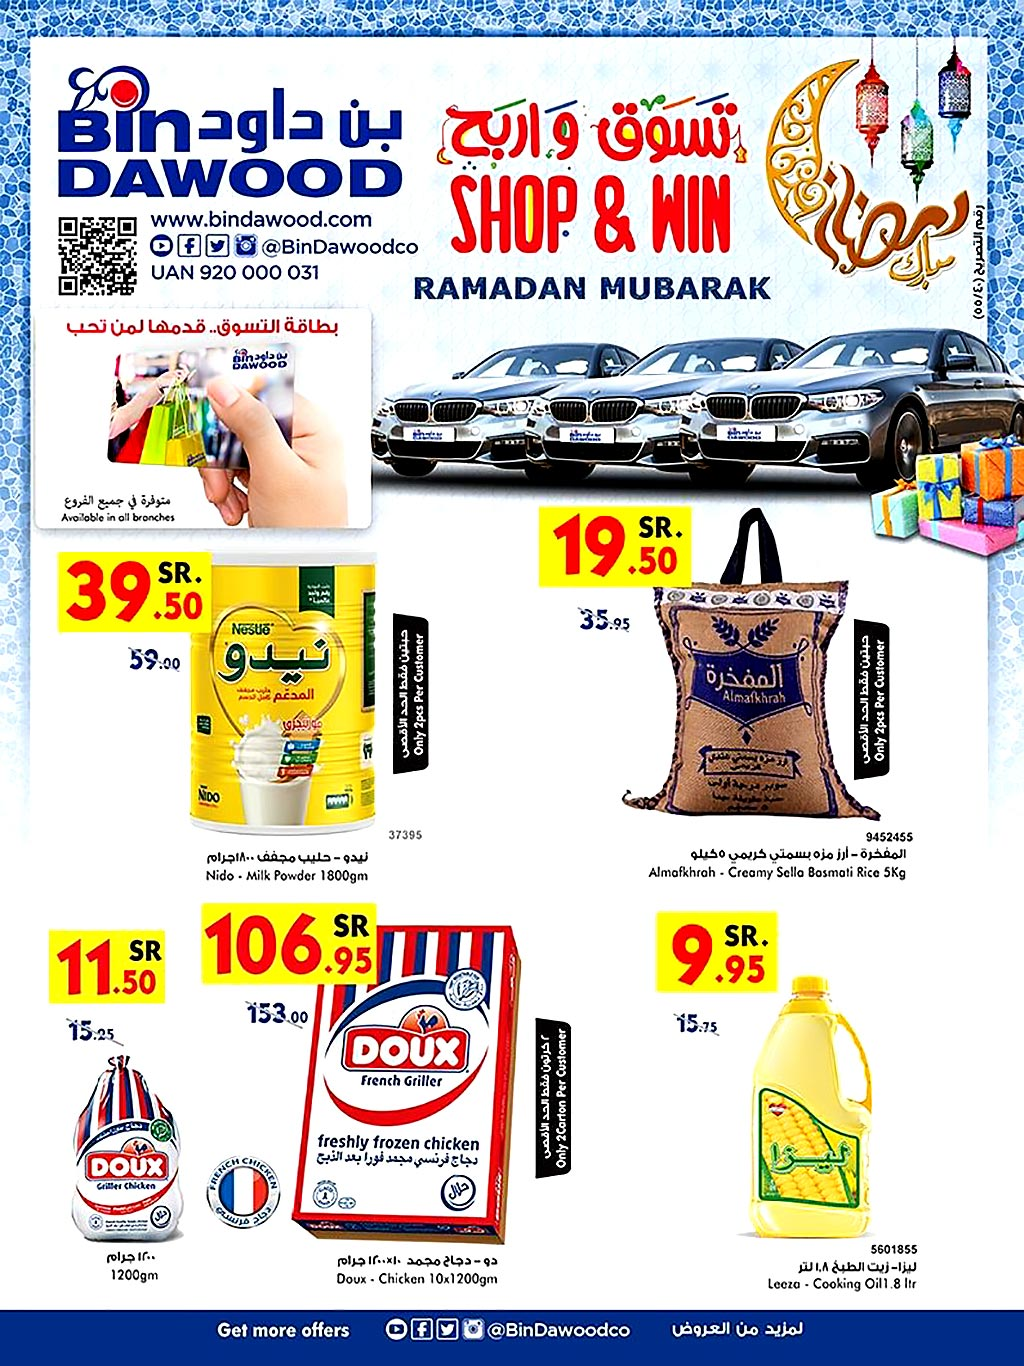 bindawood offers from 15may to 21may 2019 page number 1 عروض بـن داوود من 15 مايو حتى 21 مايو 2019 صفحة رقم 1